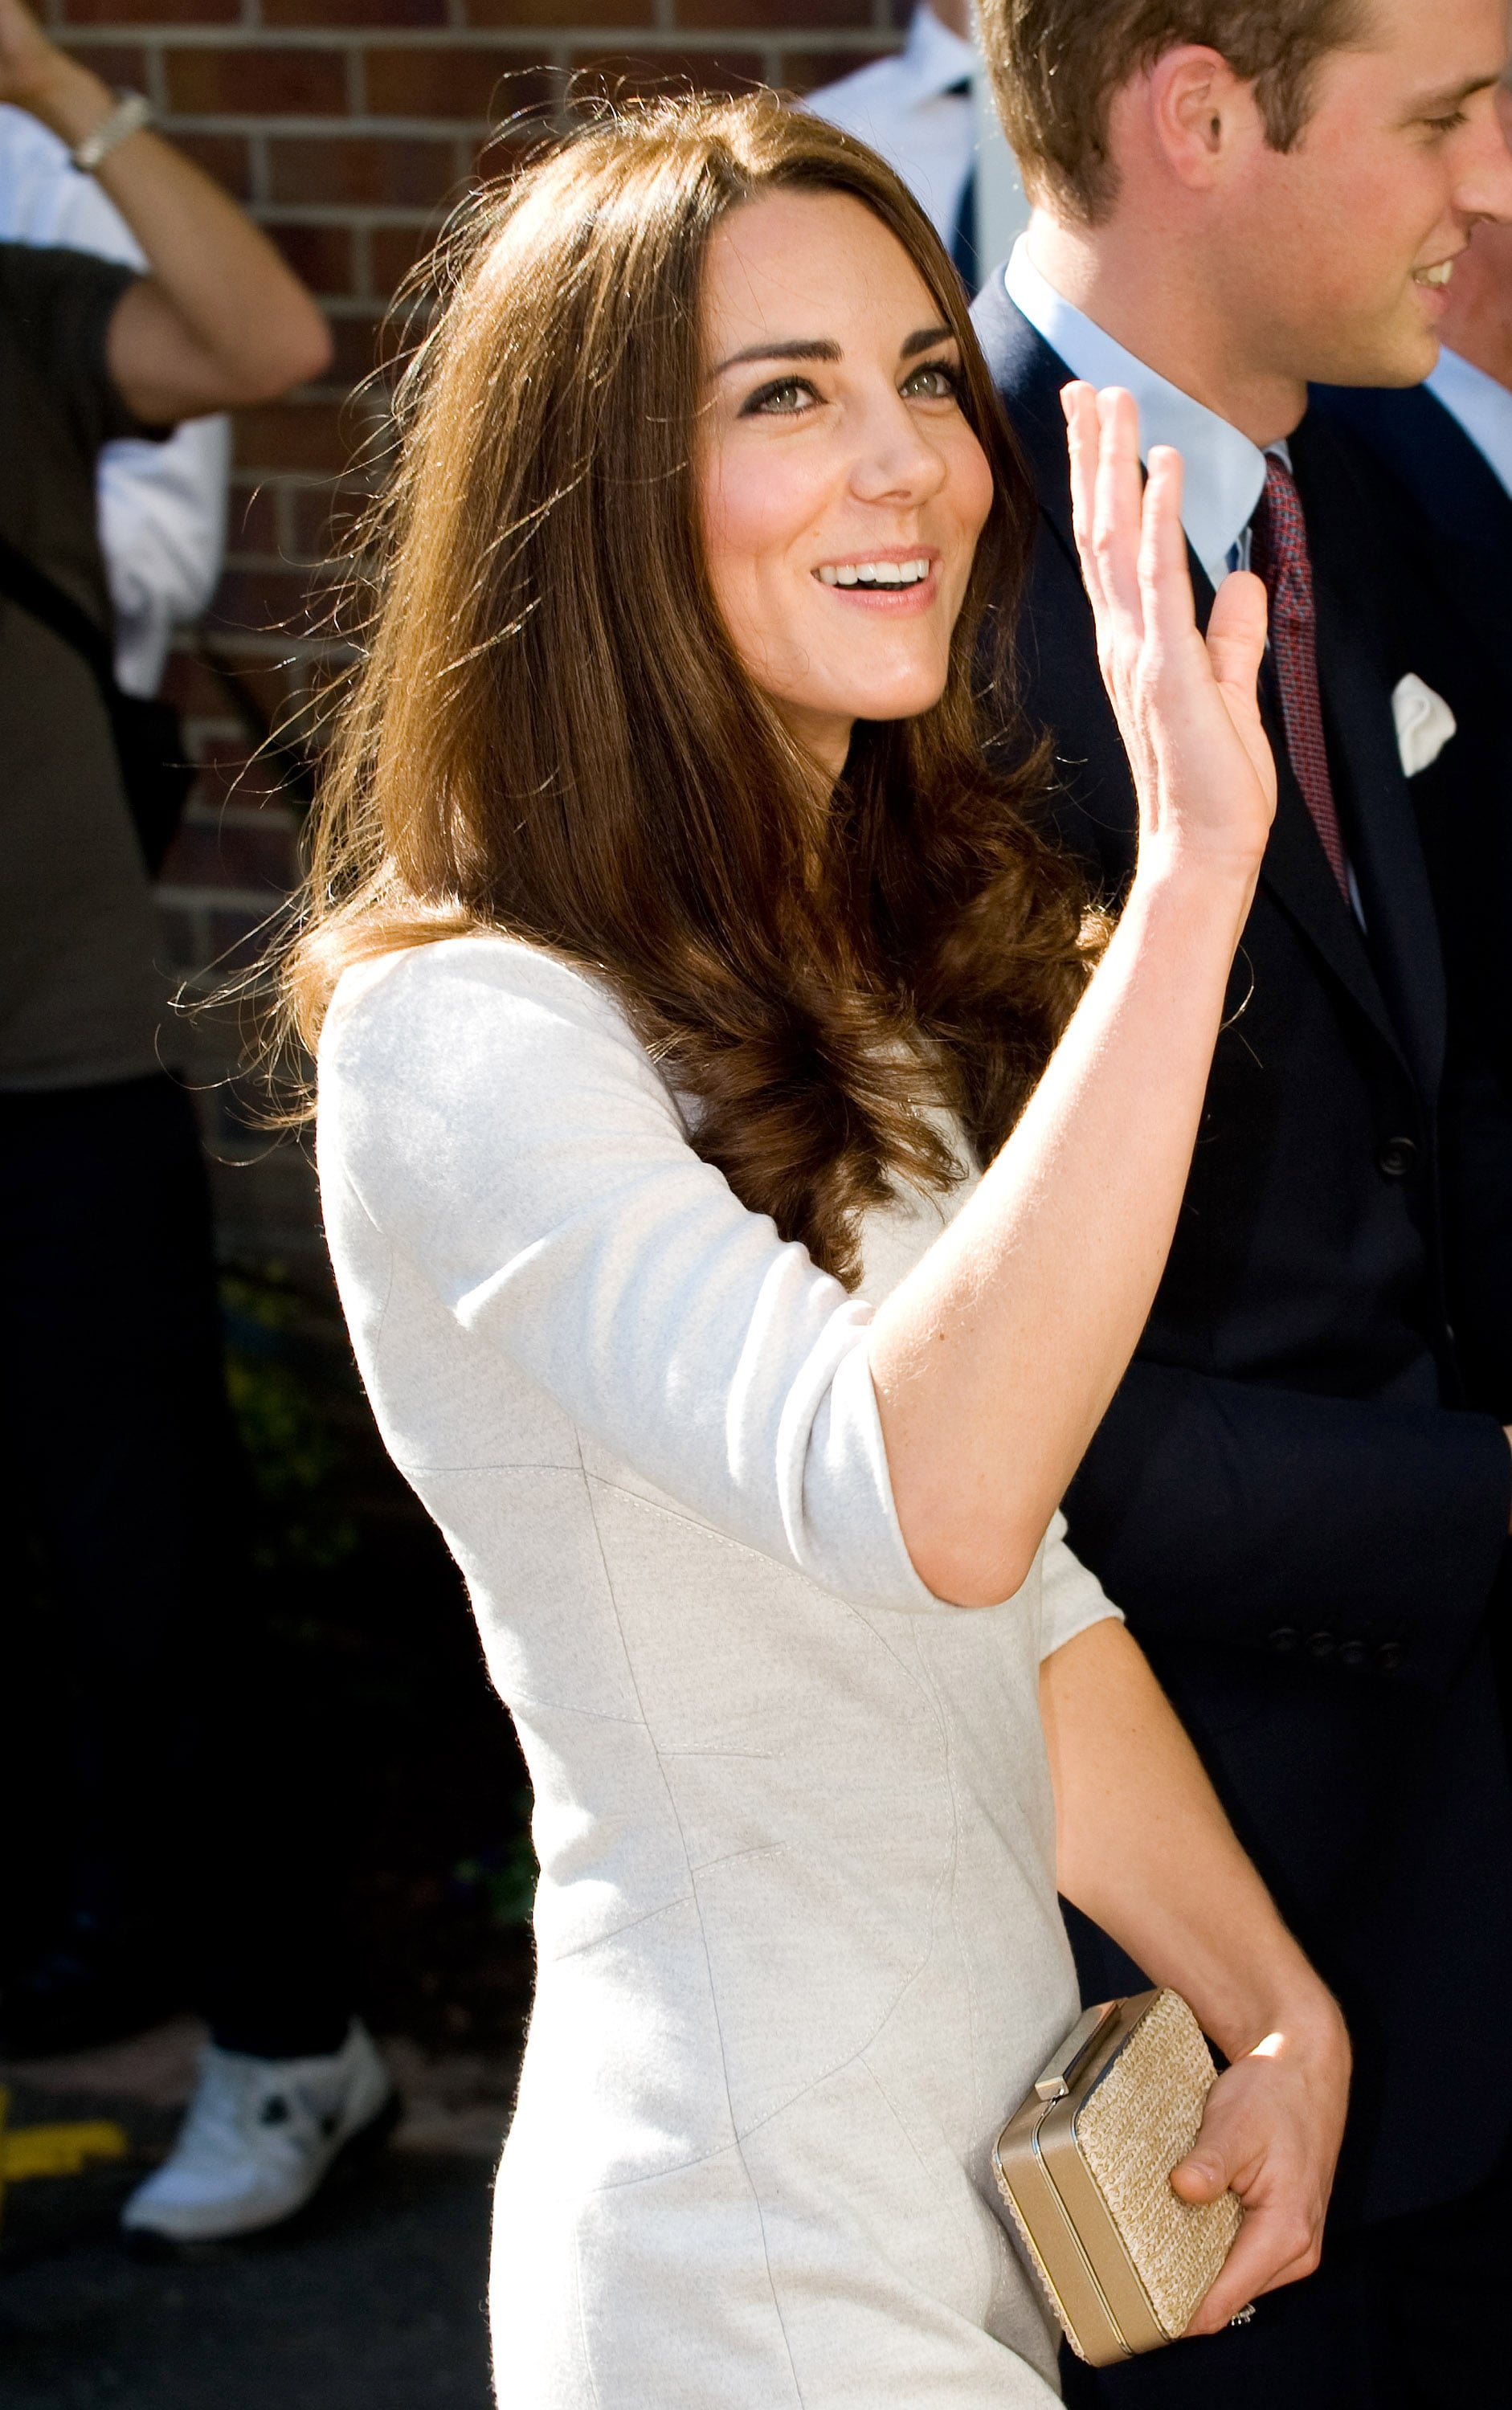 Kate Middleton smiled at her fans in London.